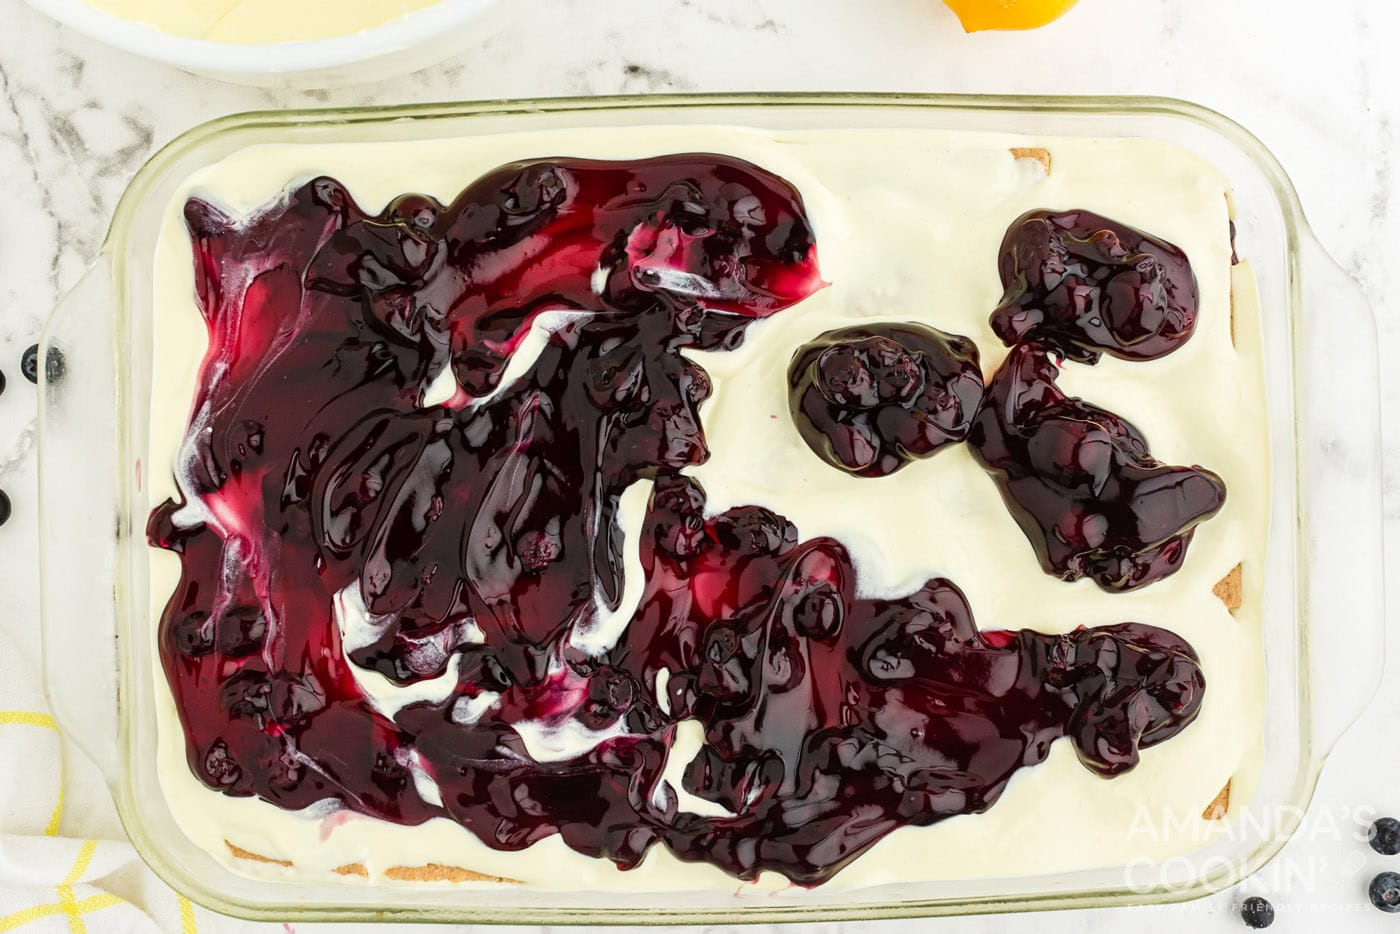 blueberry pie filling on top of pudding in a casserole dish